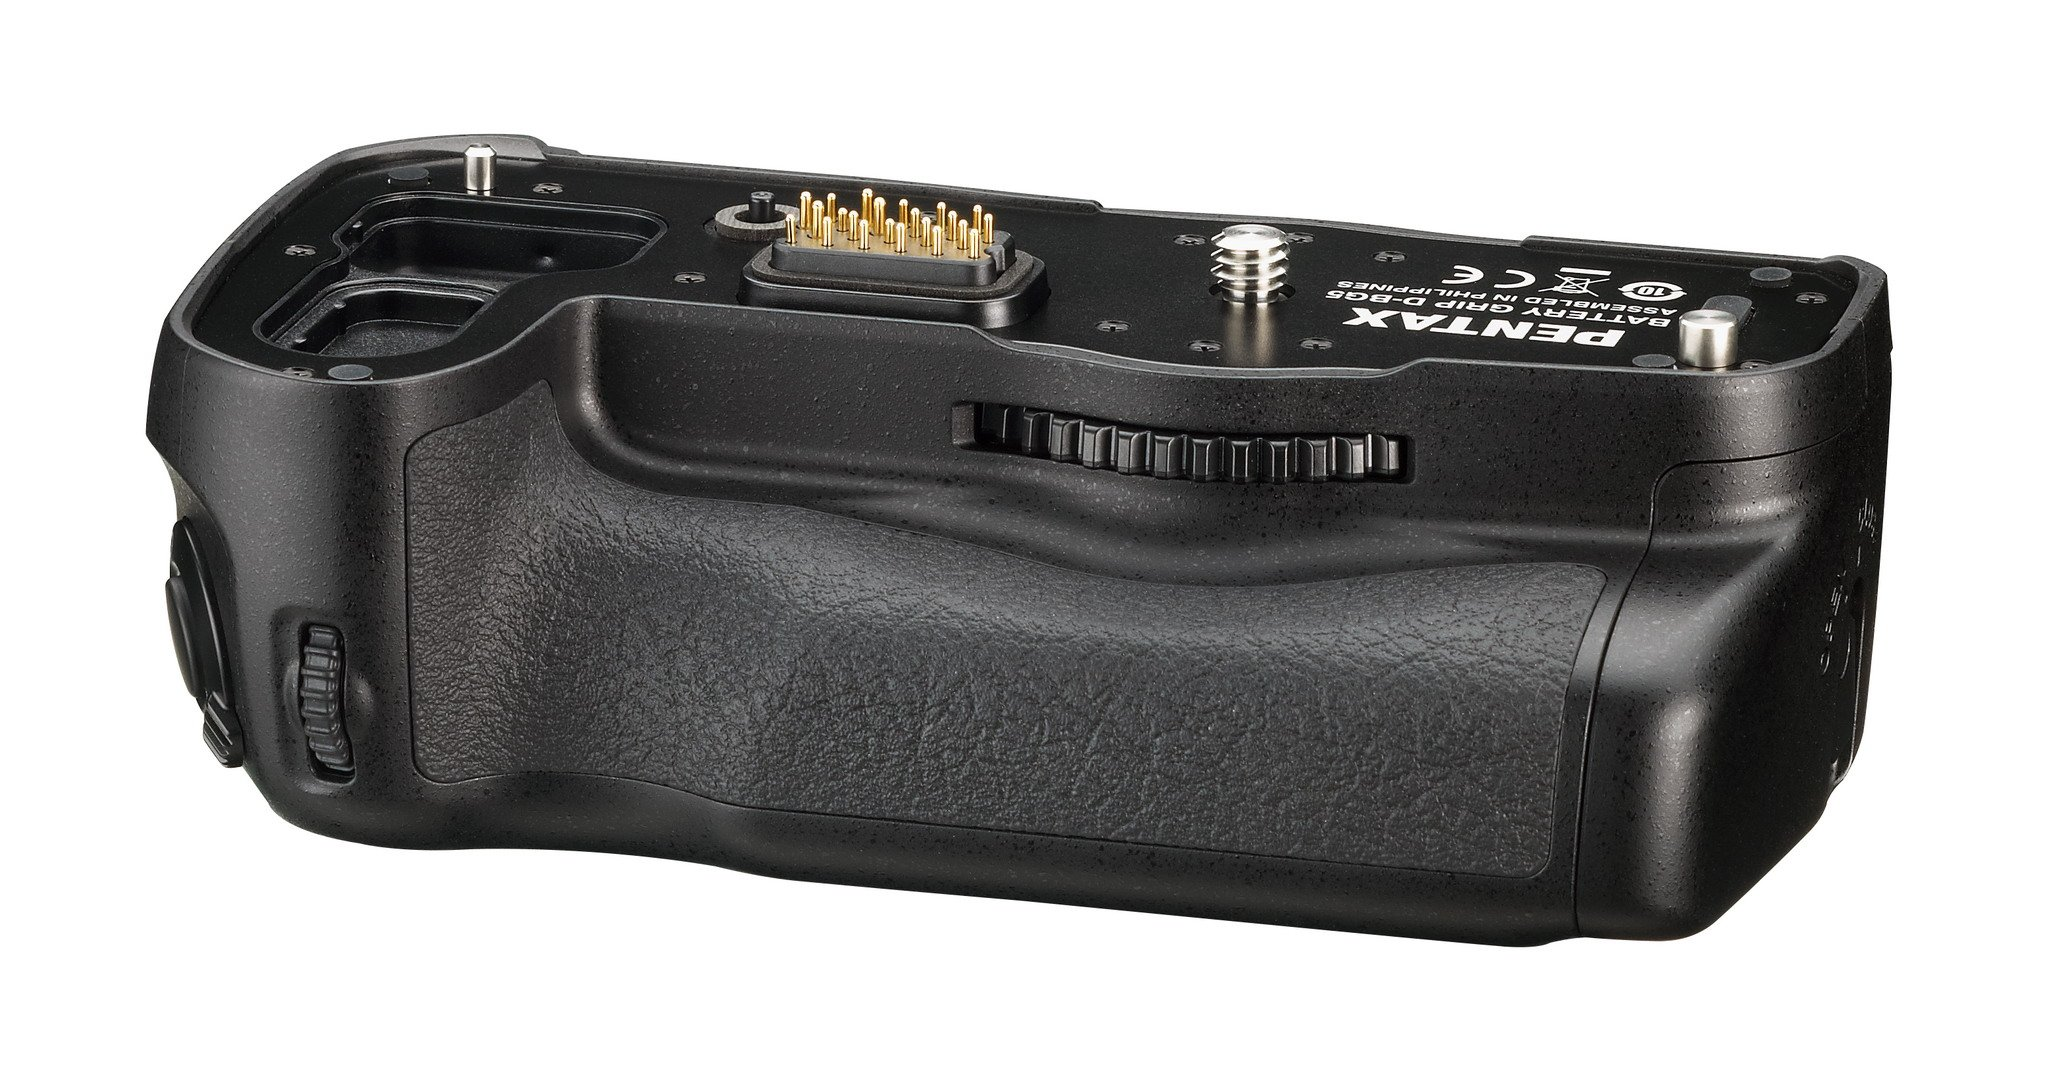 Pentax D-BG5 Battery Grip for K3 Digital SLR Camera (Black)